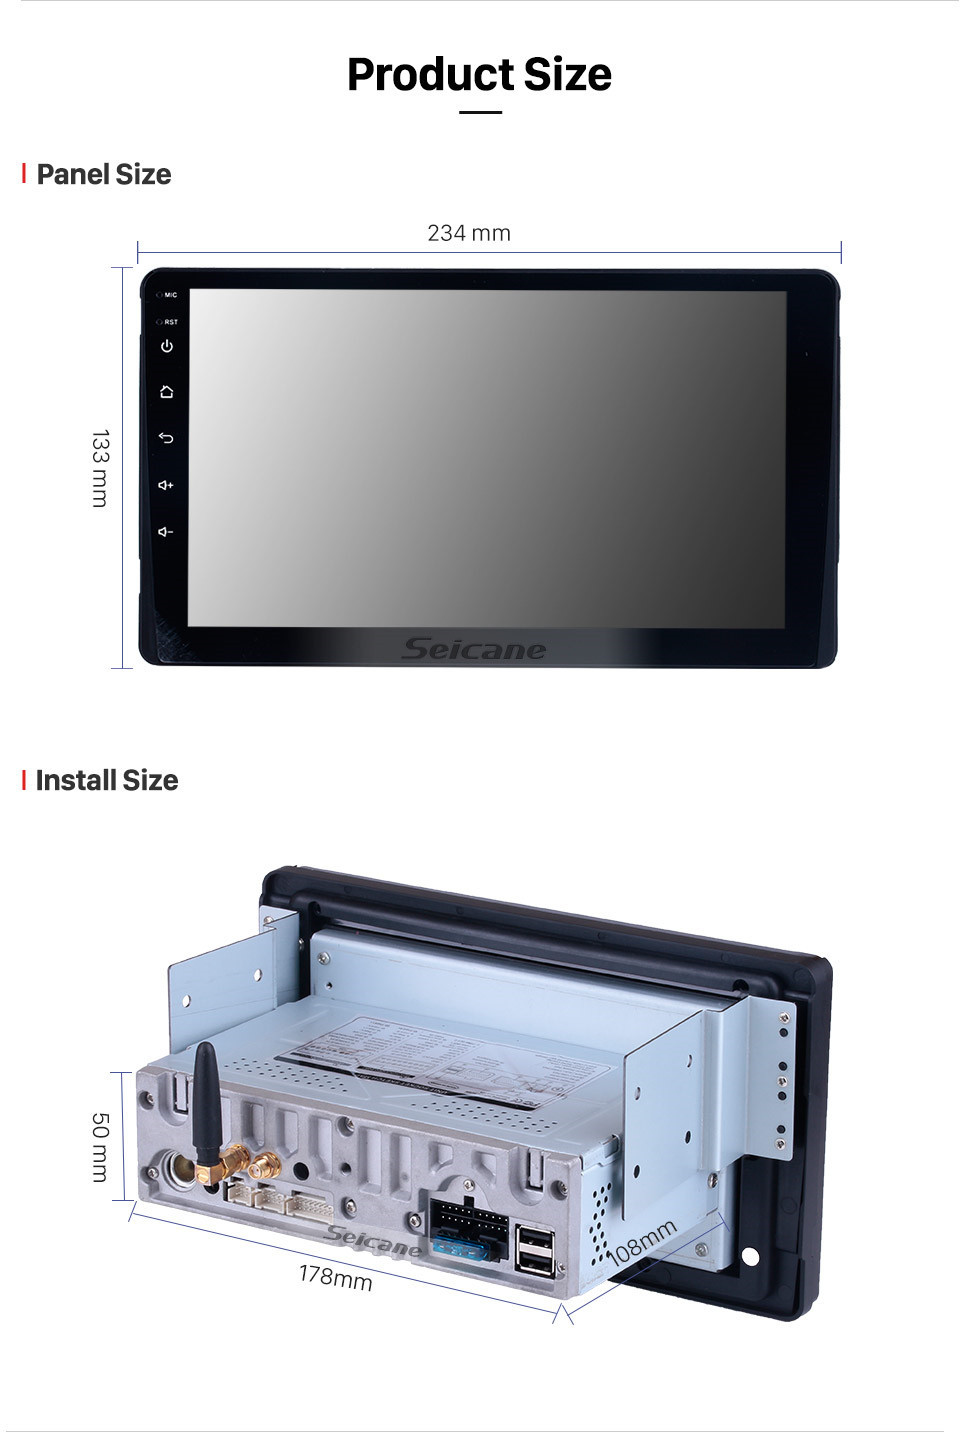 Seicane 2015-2018 Toyota Sienna XL30 Android 10.0 HD 1024*600 touchscreen Radio DVD Player GPS Navigation System with WiFi Bluetooth Music Mirror Link 1080P Video Steering Wheel Control